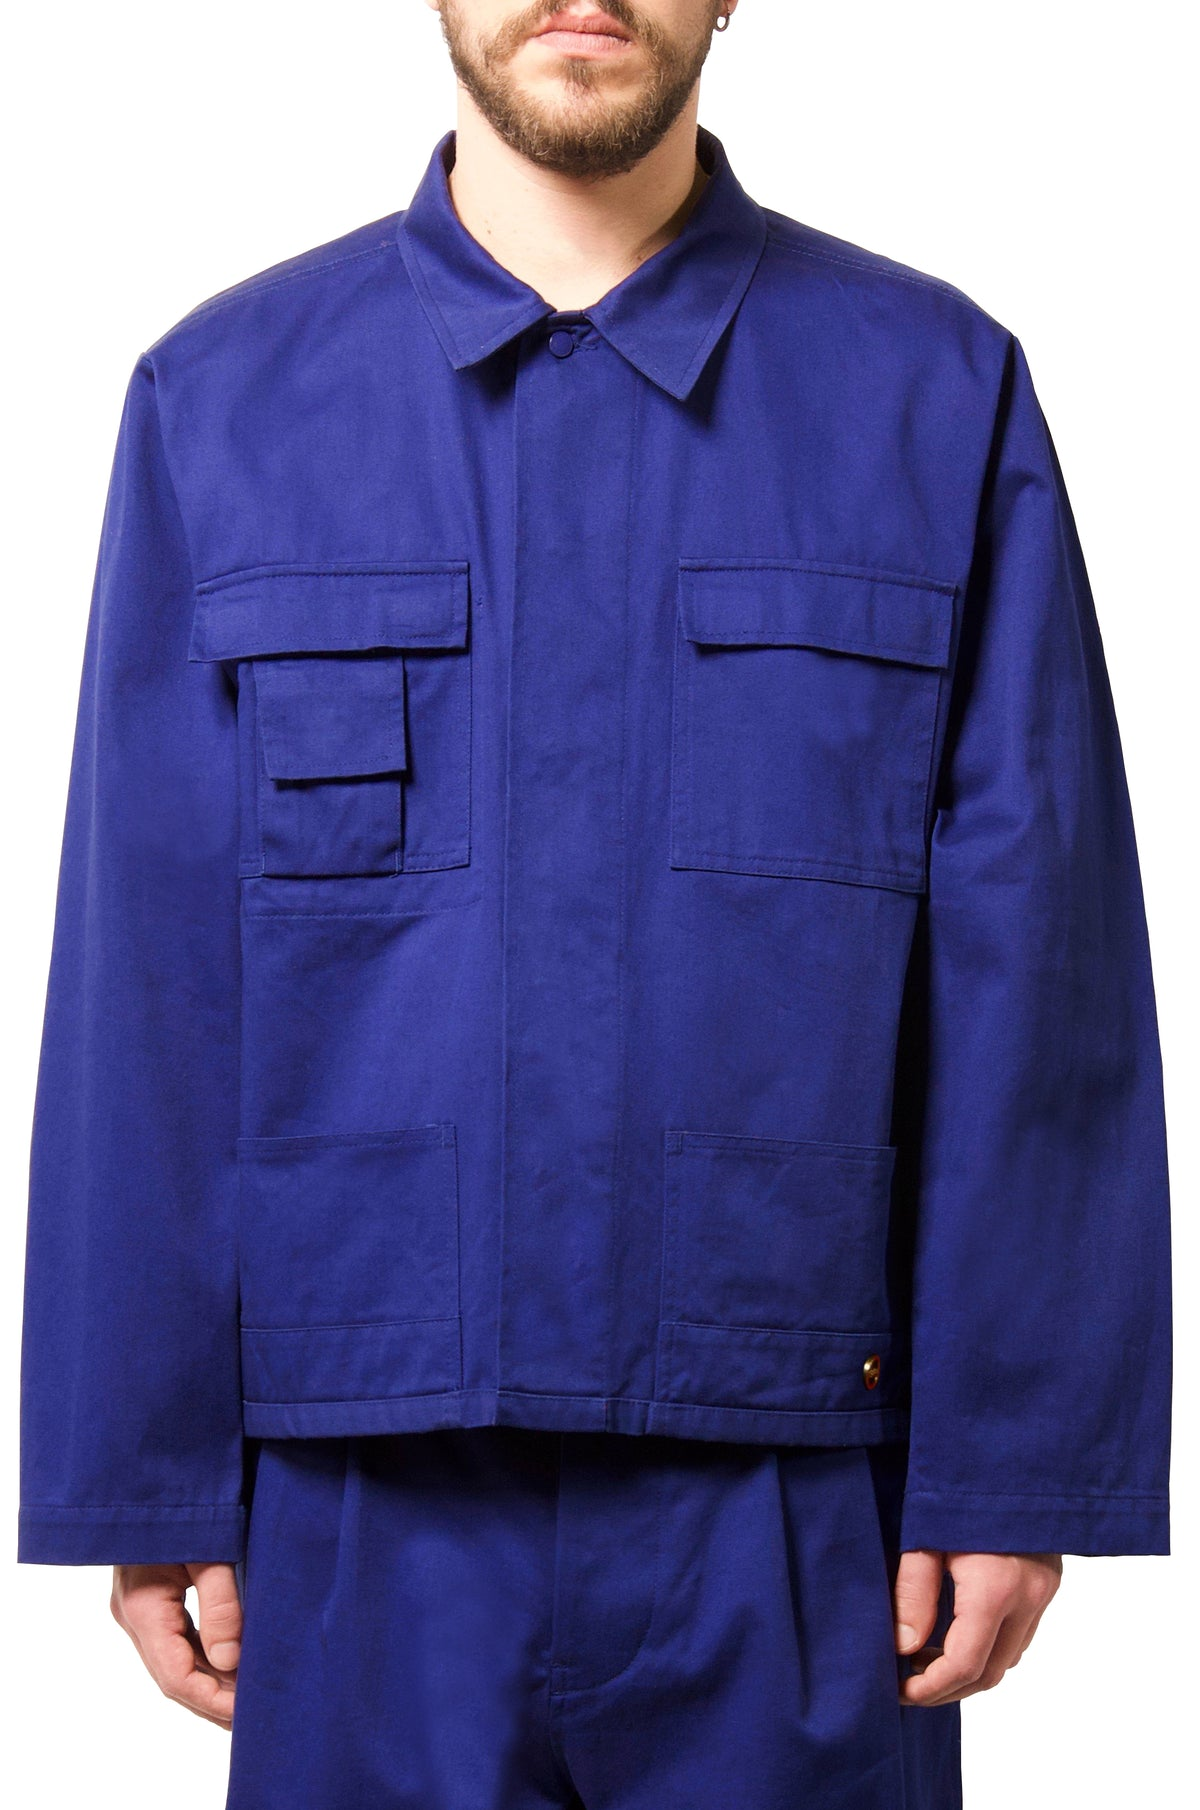 032c WWB Workers Jacket Blue - 032c